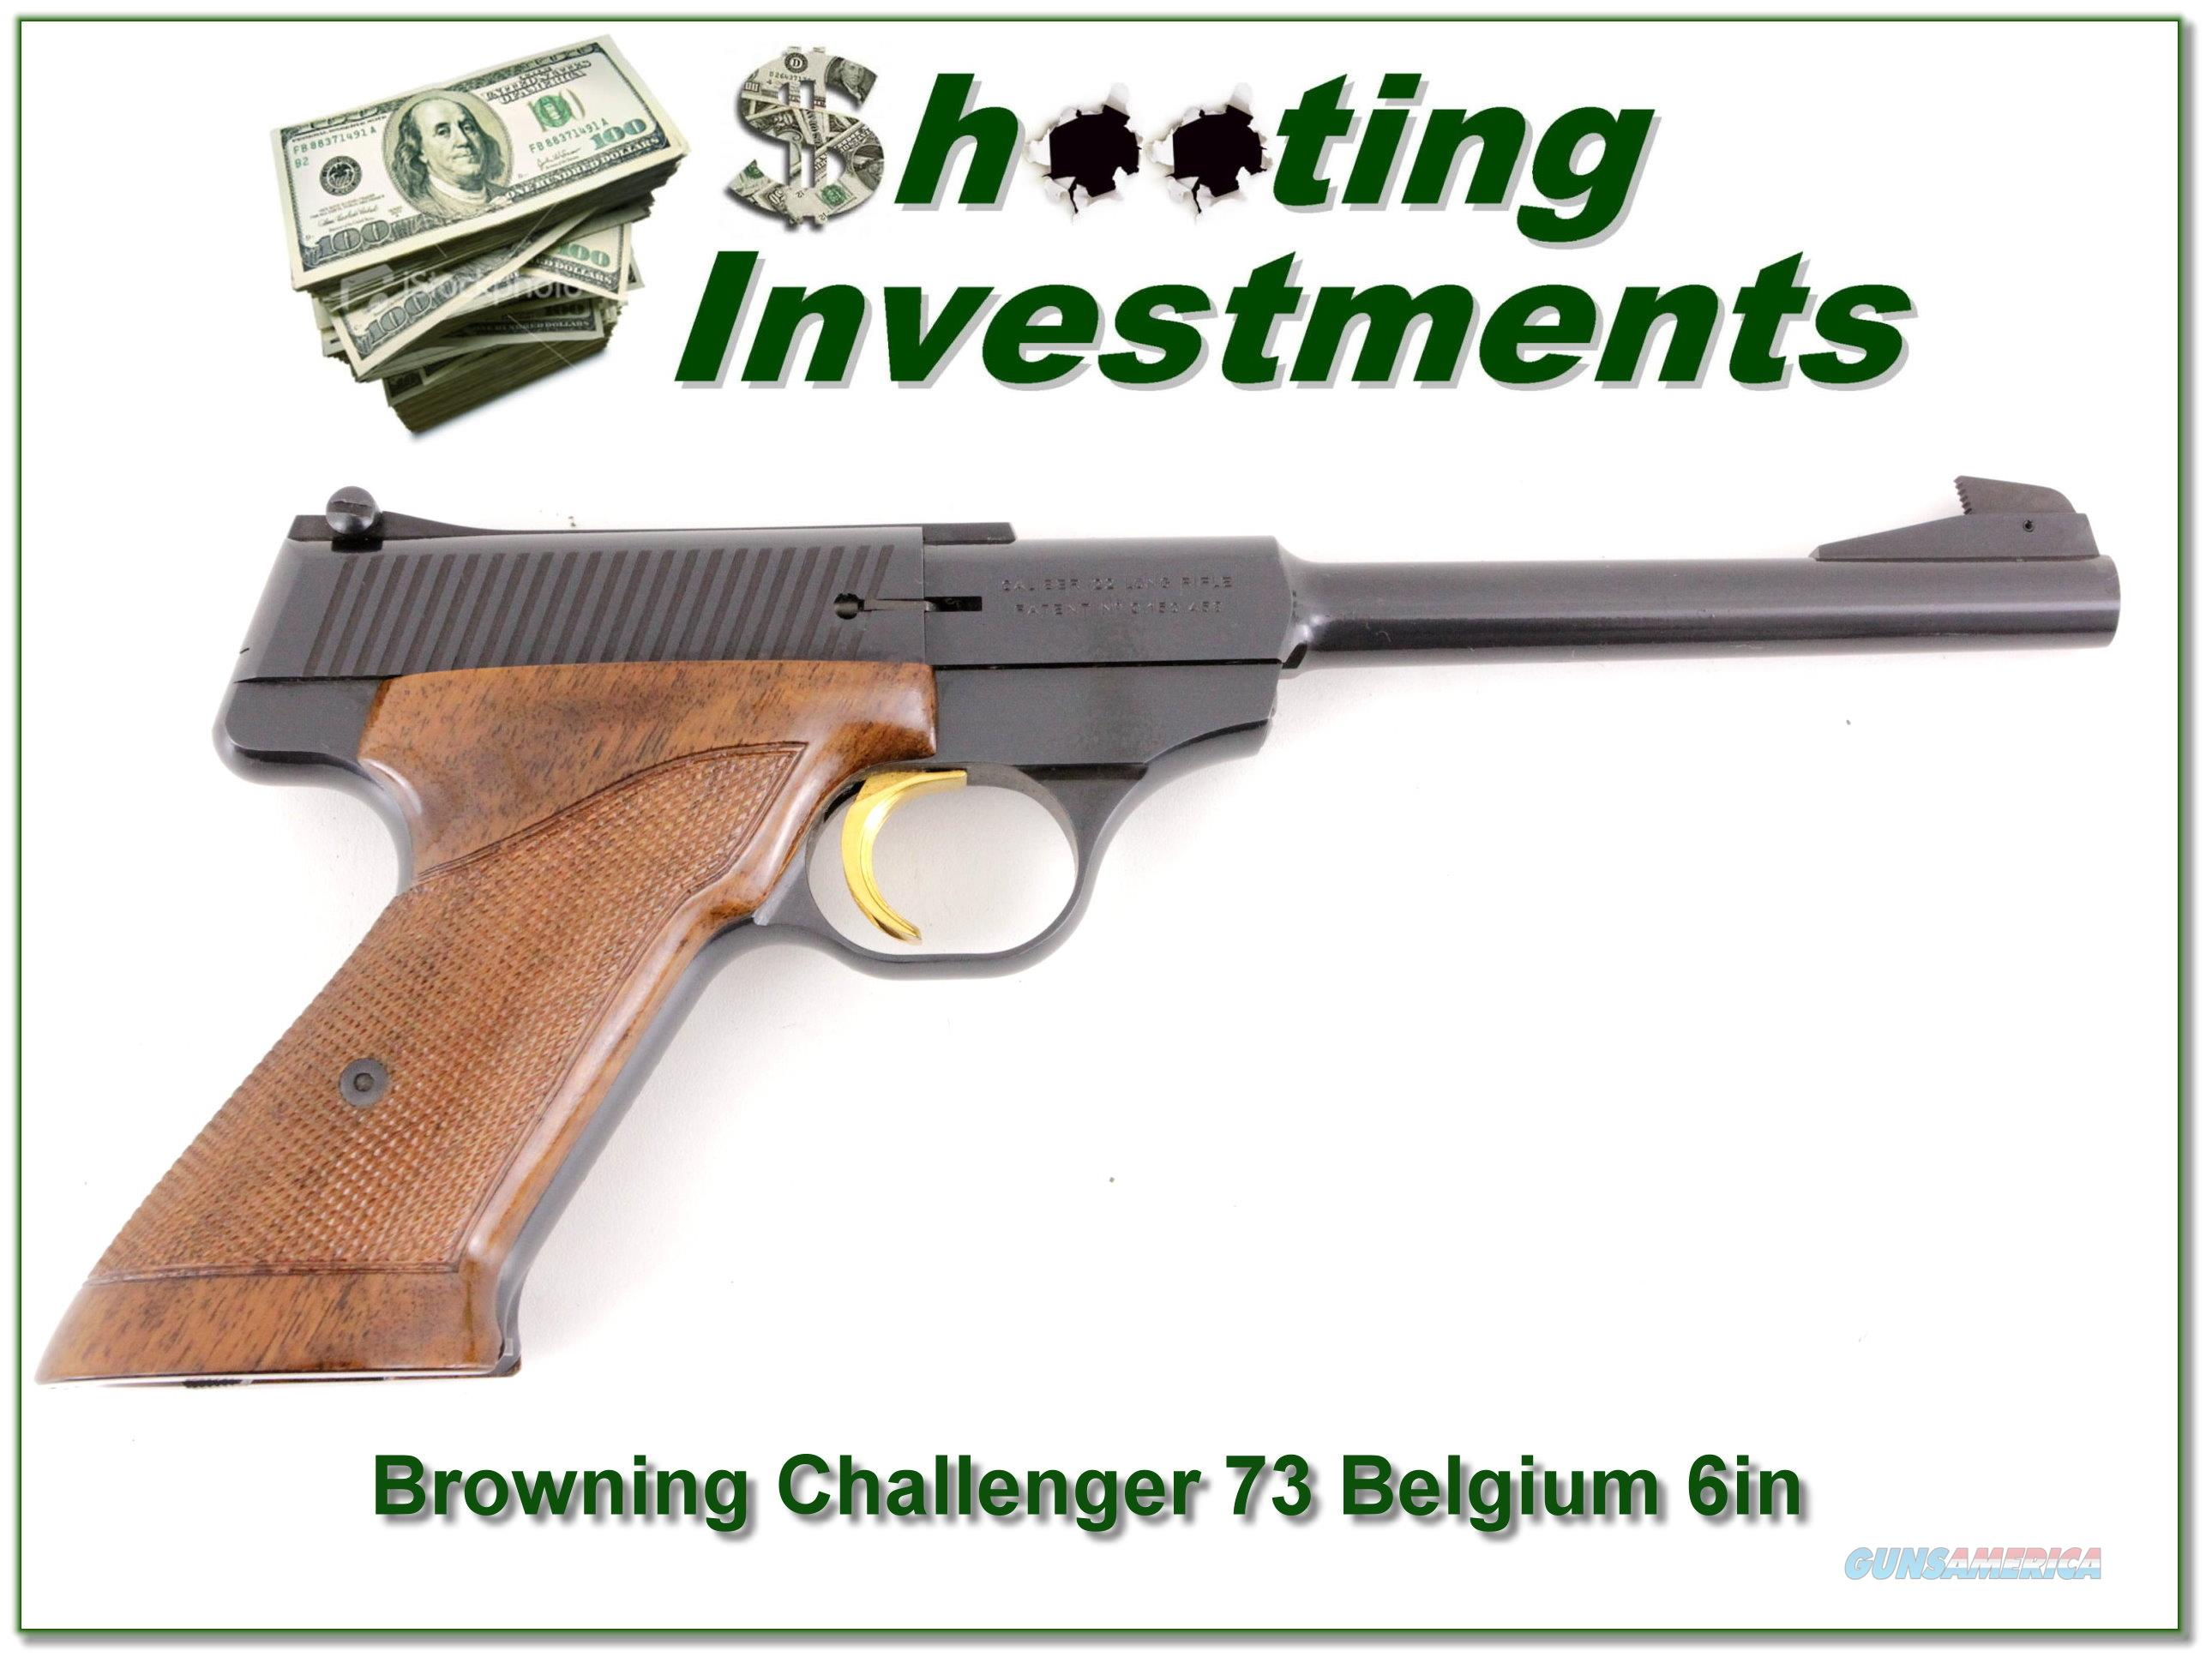 Browning Challenger 1973 Belgium 6in 22LR Exc Cond!  Guns > Pistols > Browning Pistols > Other Autos